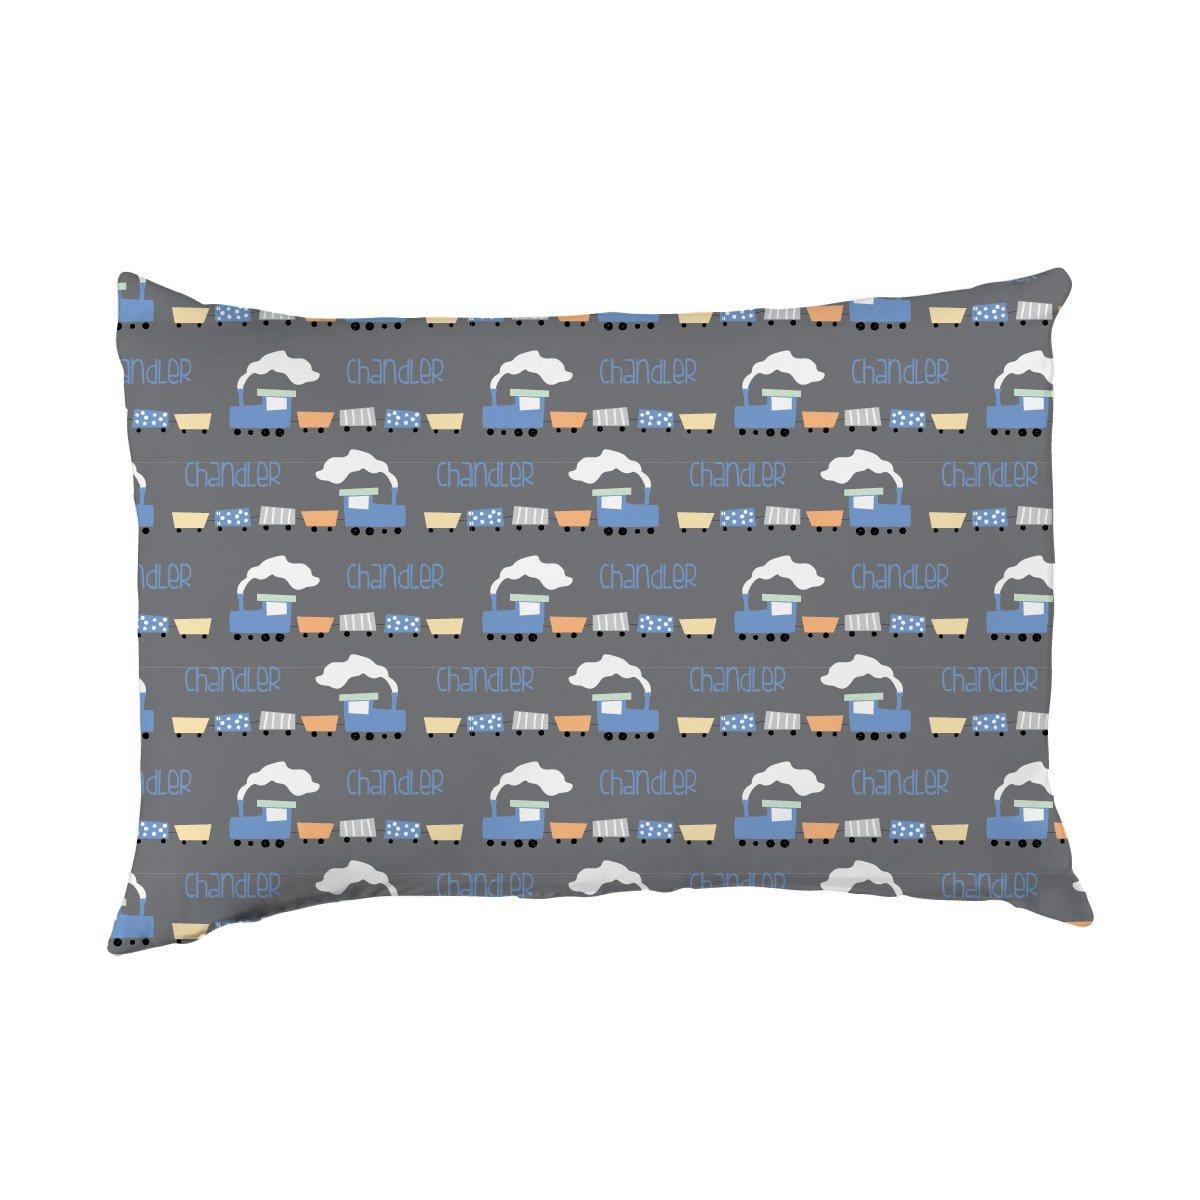 Chandler's Choo Choo Train | Big Kid Pillow Case